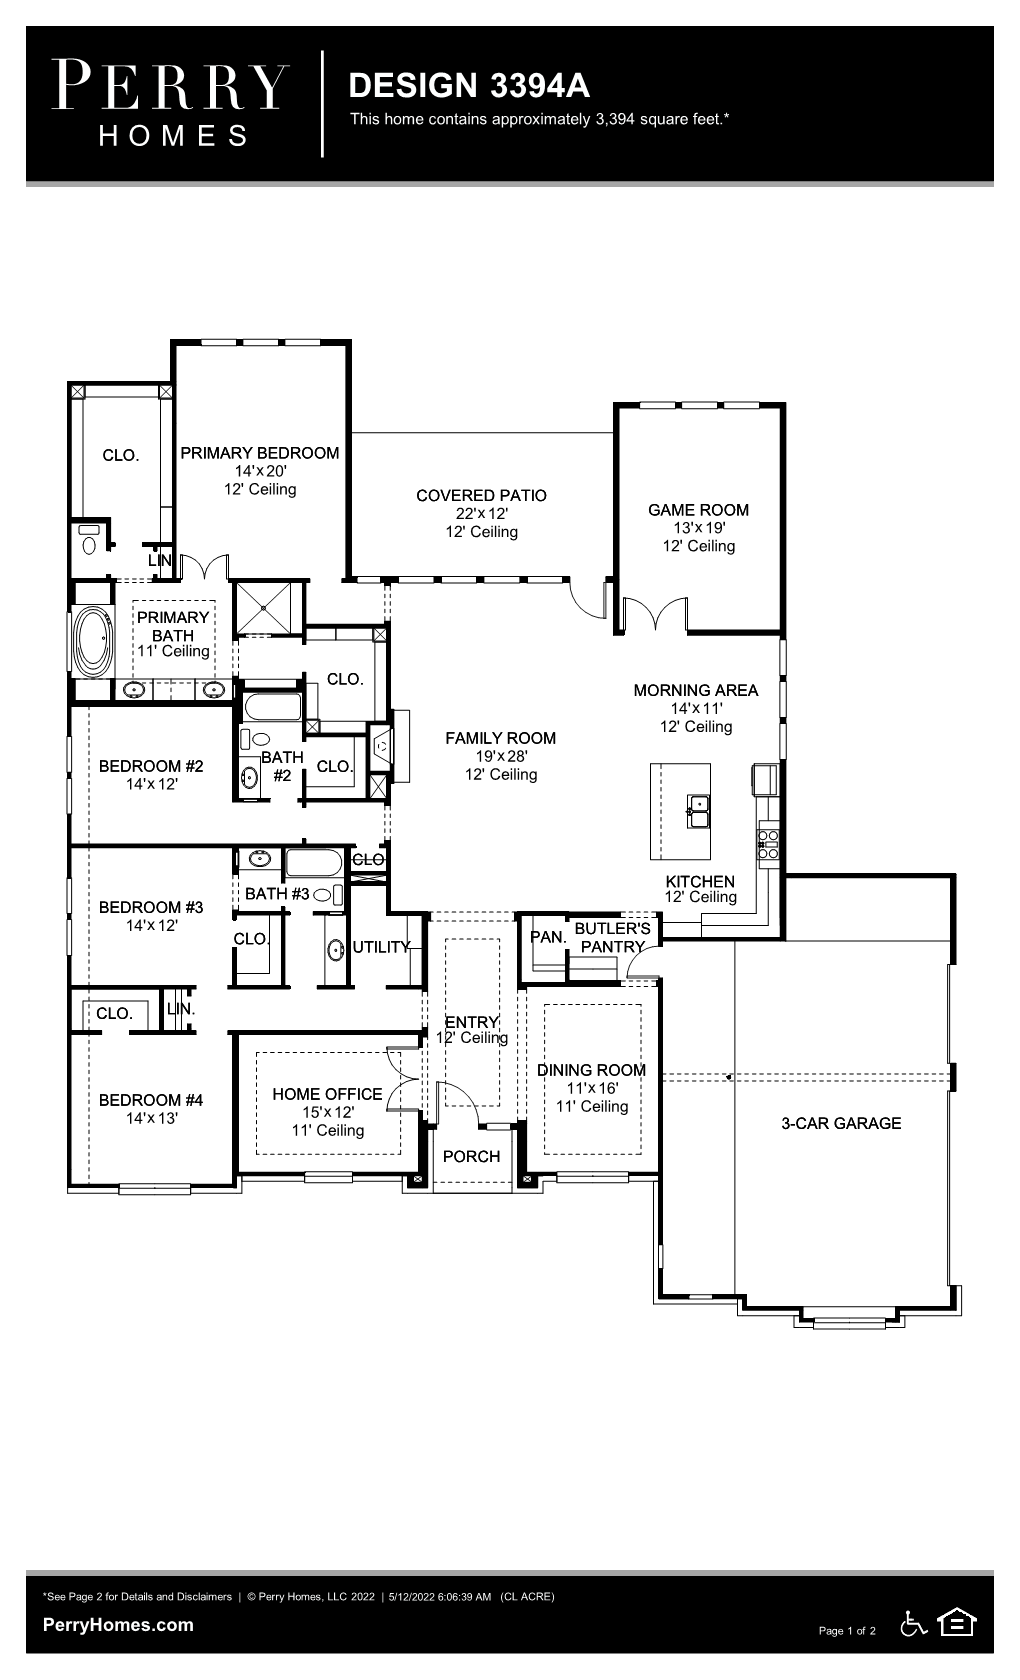 Floor Plan for 3394A